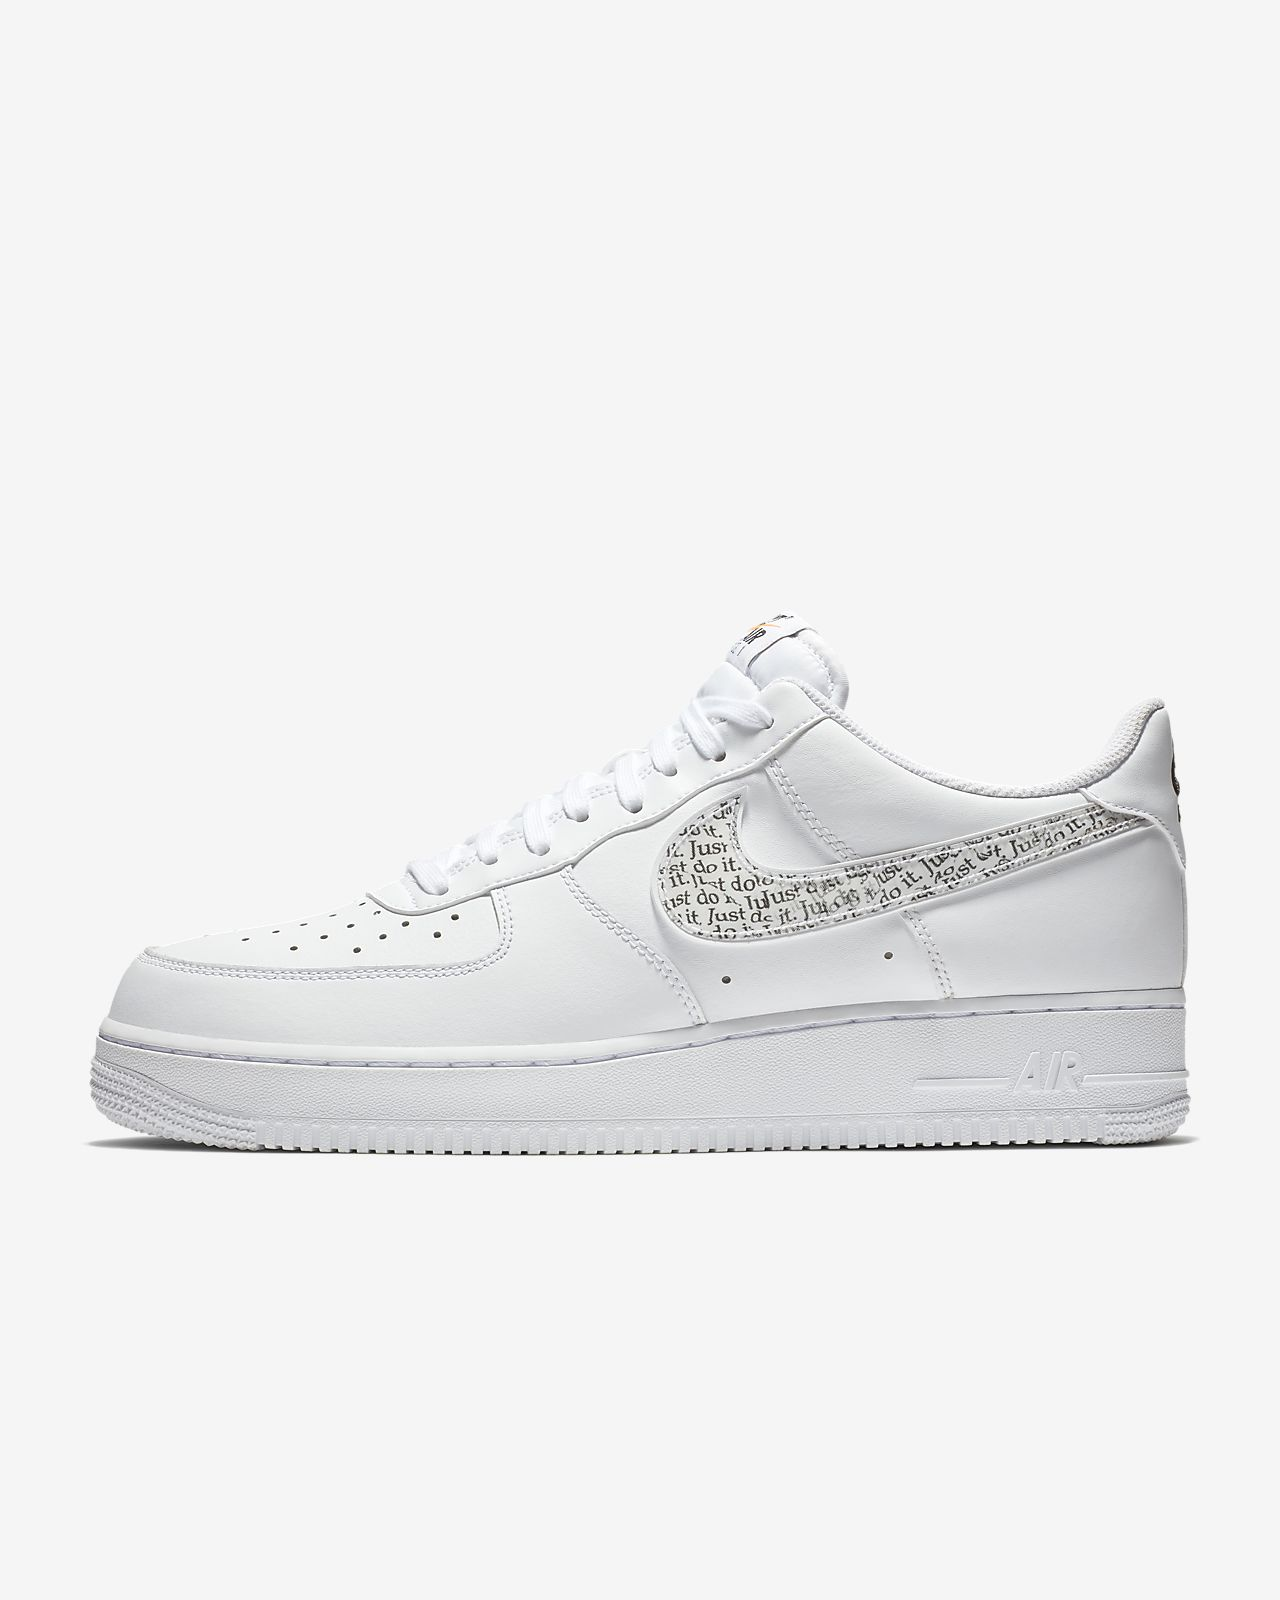 new product a9762 4ea7b Chaussure Nike Lntc Jdi Homme Ca Force Pour  07 Lv8 Air 1 ppxSFwdrqU